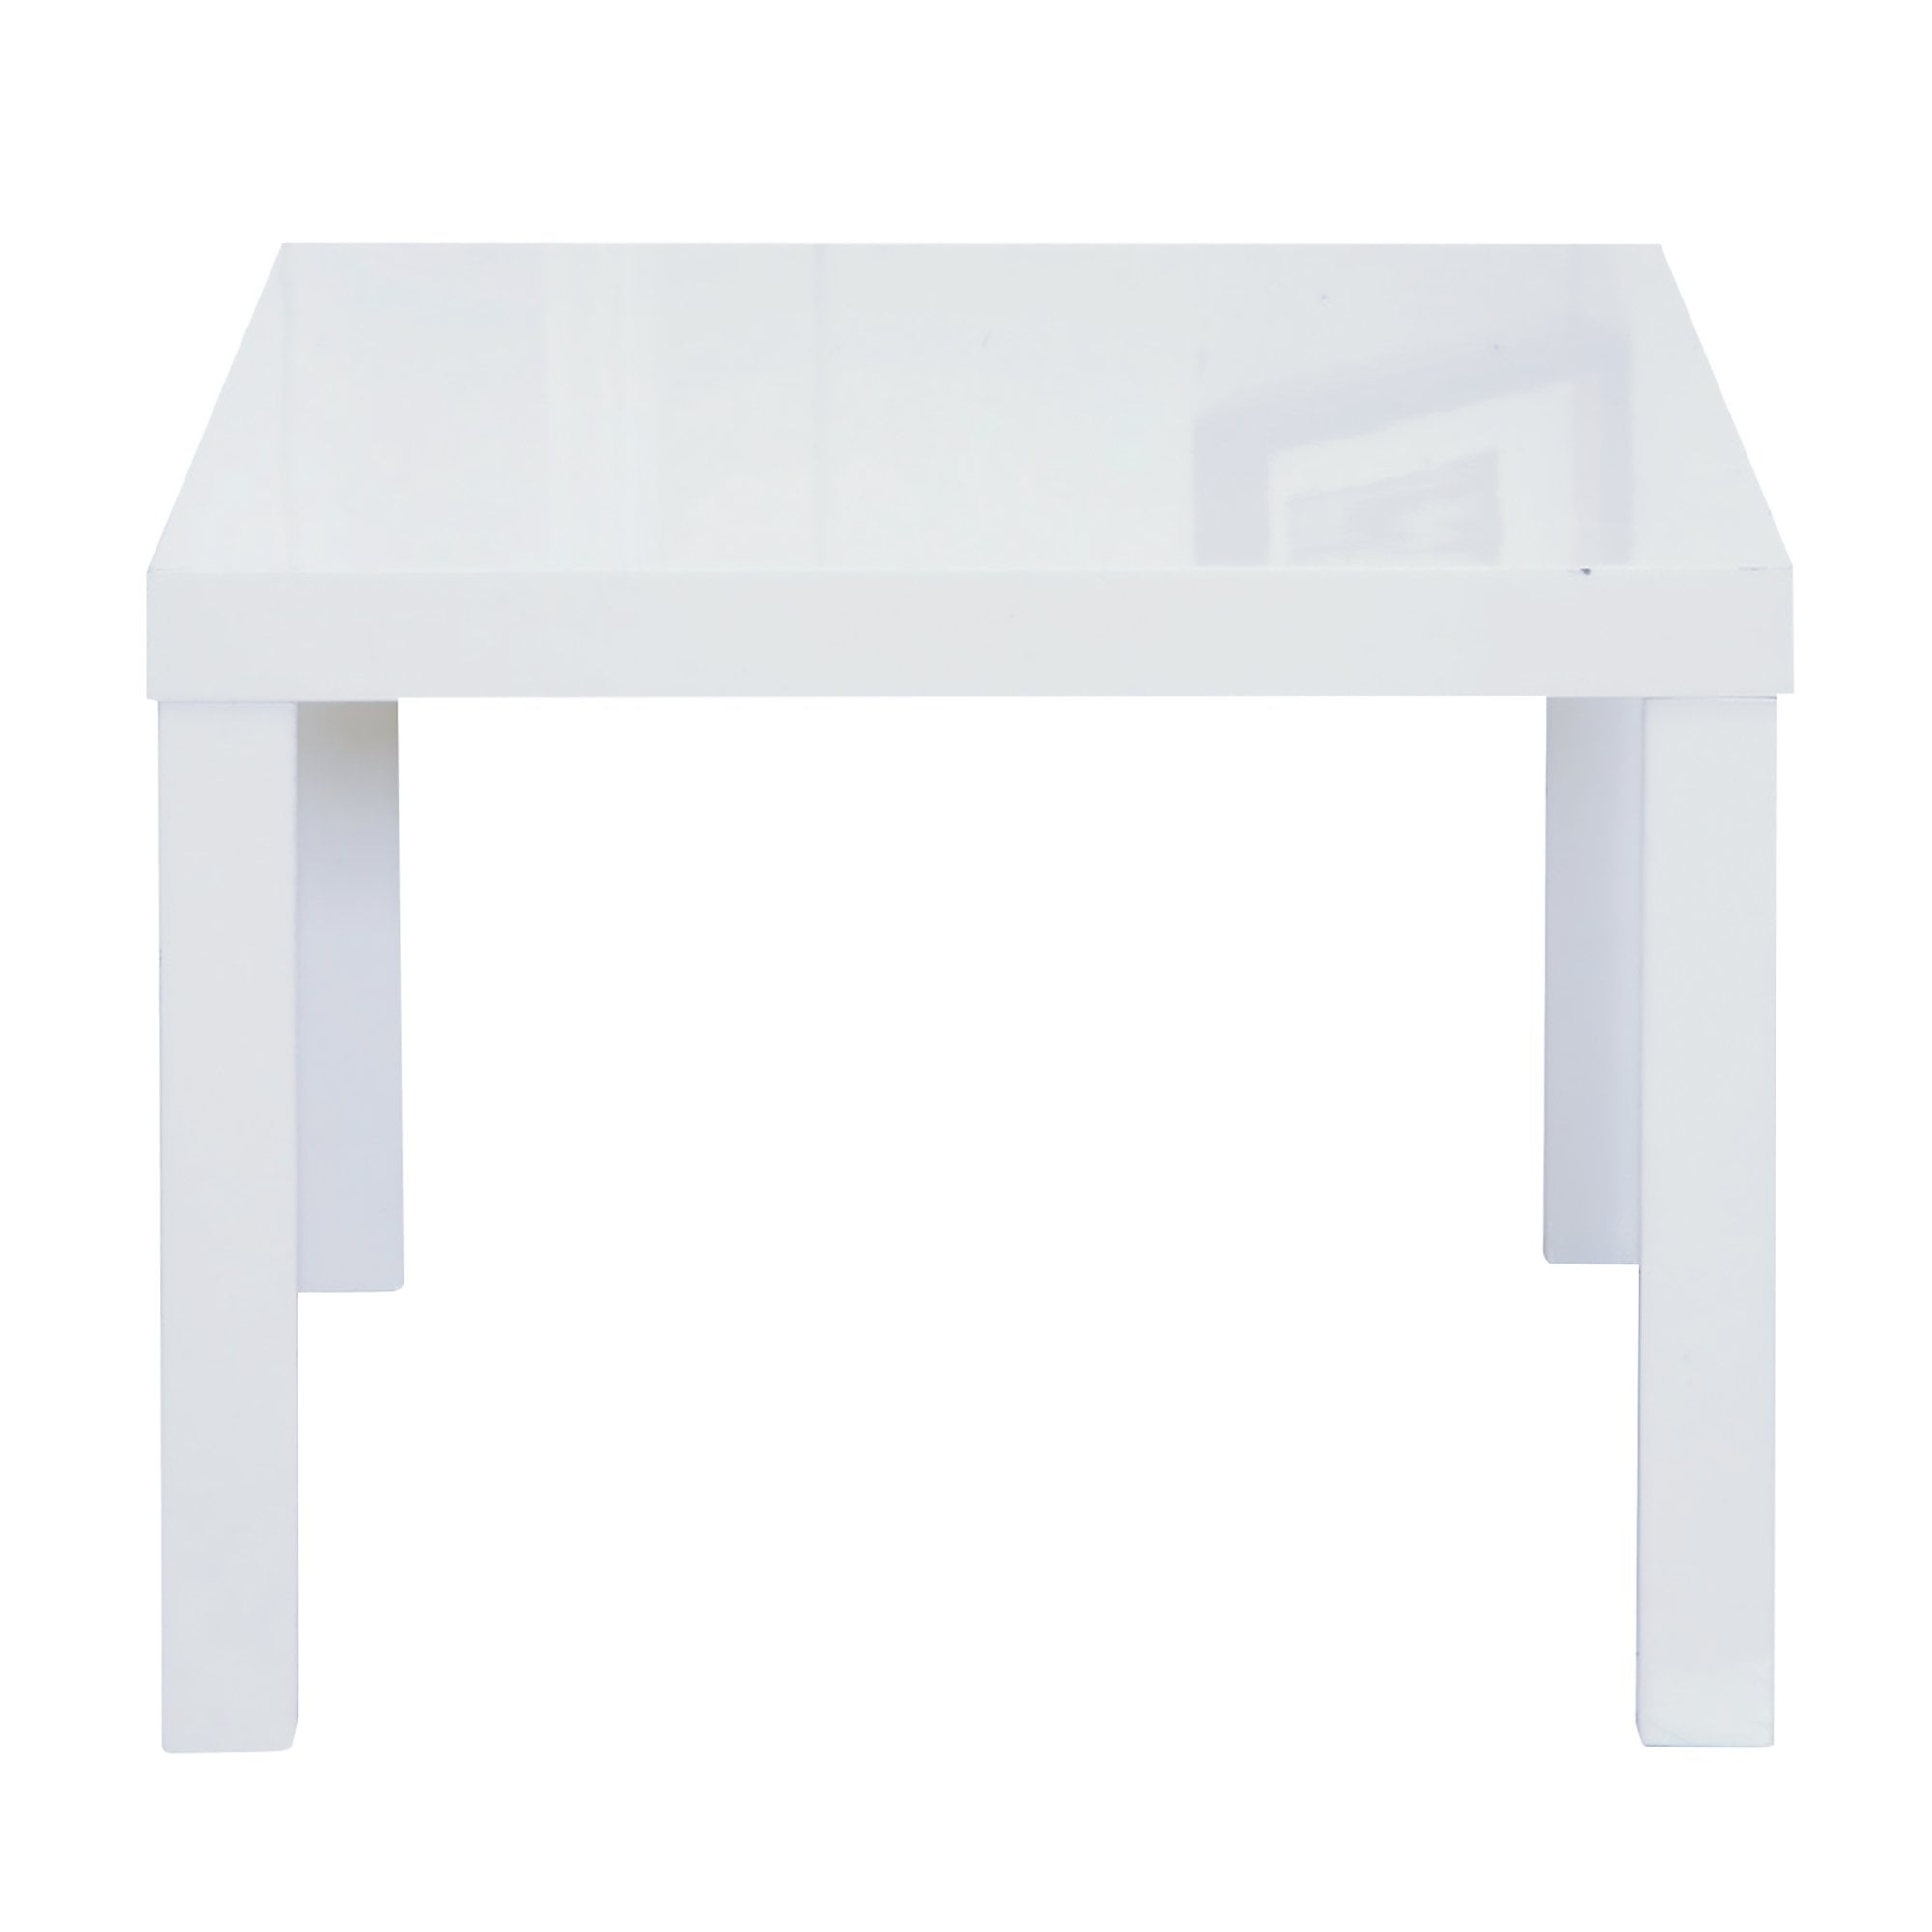 katie nightstand bedroom growth table end white open tables projects small shelf ana diy